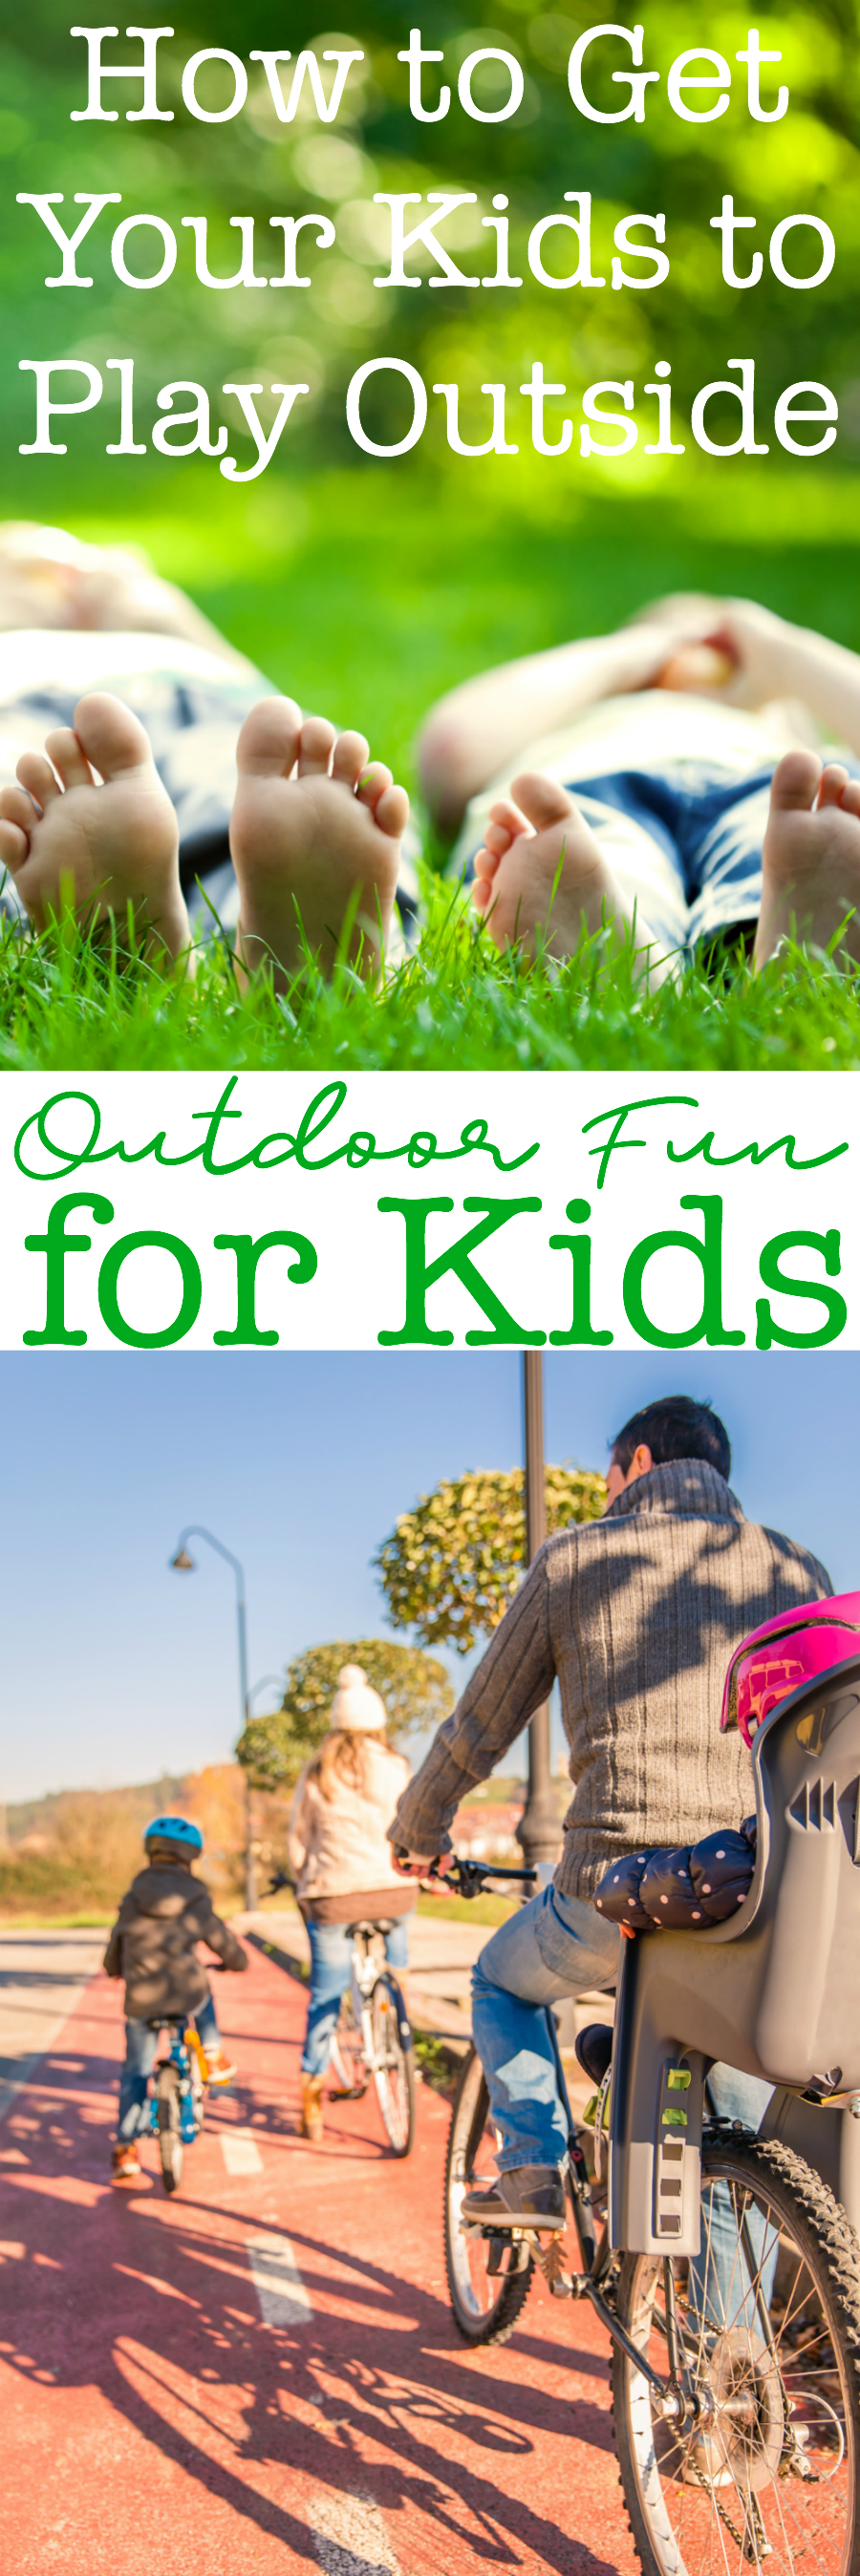 Outdoor fun for kids has changed over the years. Playing outdoors offers kids an opportunity for learning and creative play. Check out all these fun ways to experience the outdoors as a family.